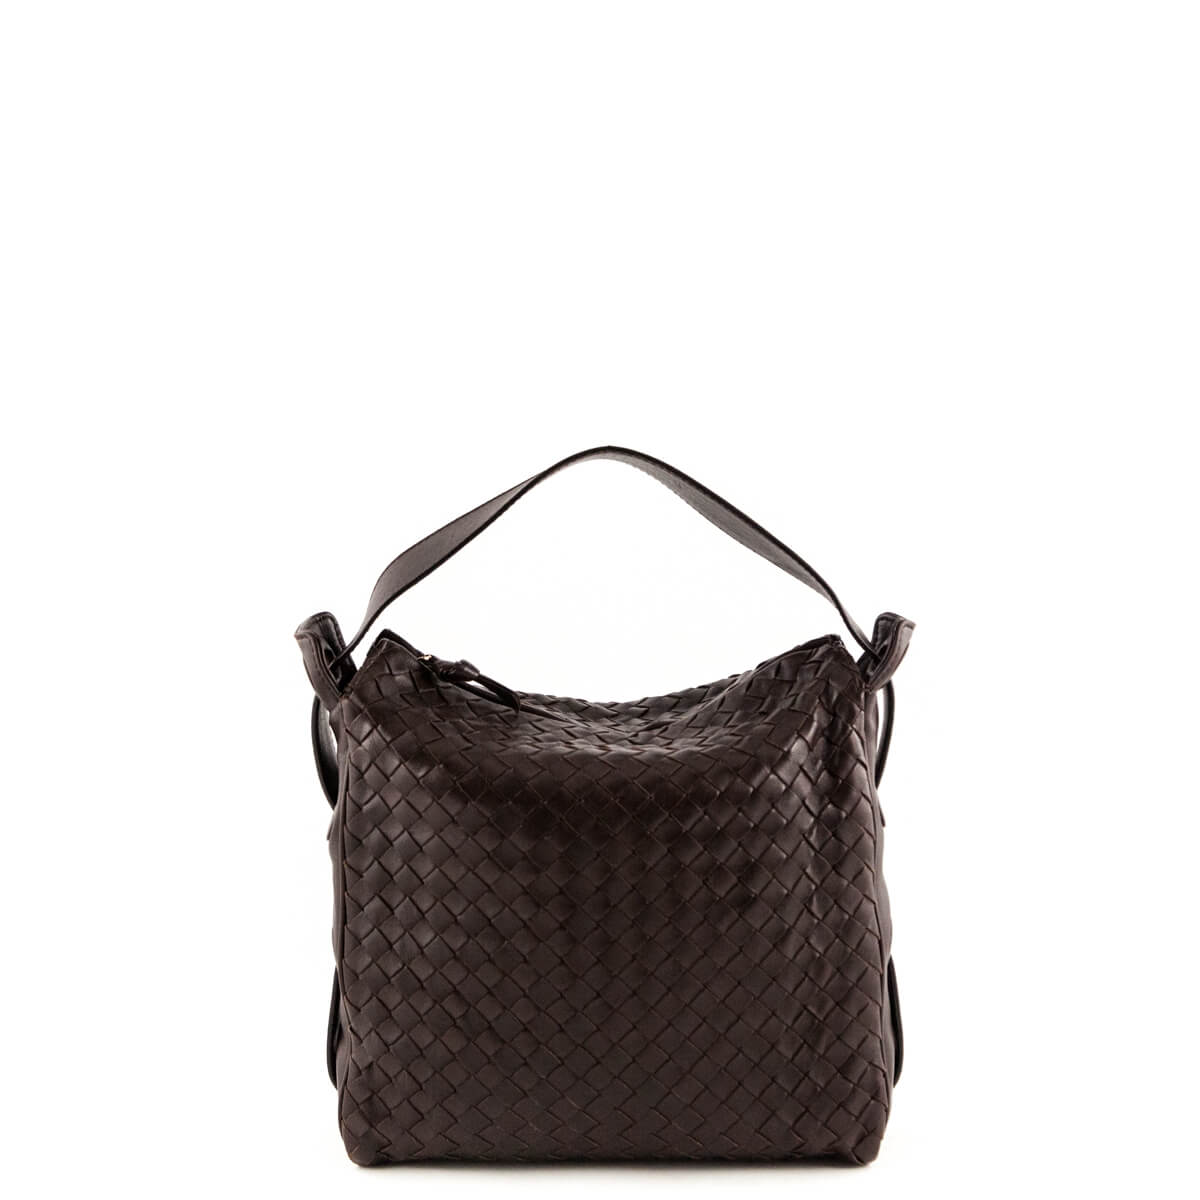 c4adf3c942 Bottega Veneta Brown Intrecciato Top Handle - LOVE that BAG - Preowned  Authentic Designer Handbags ...